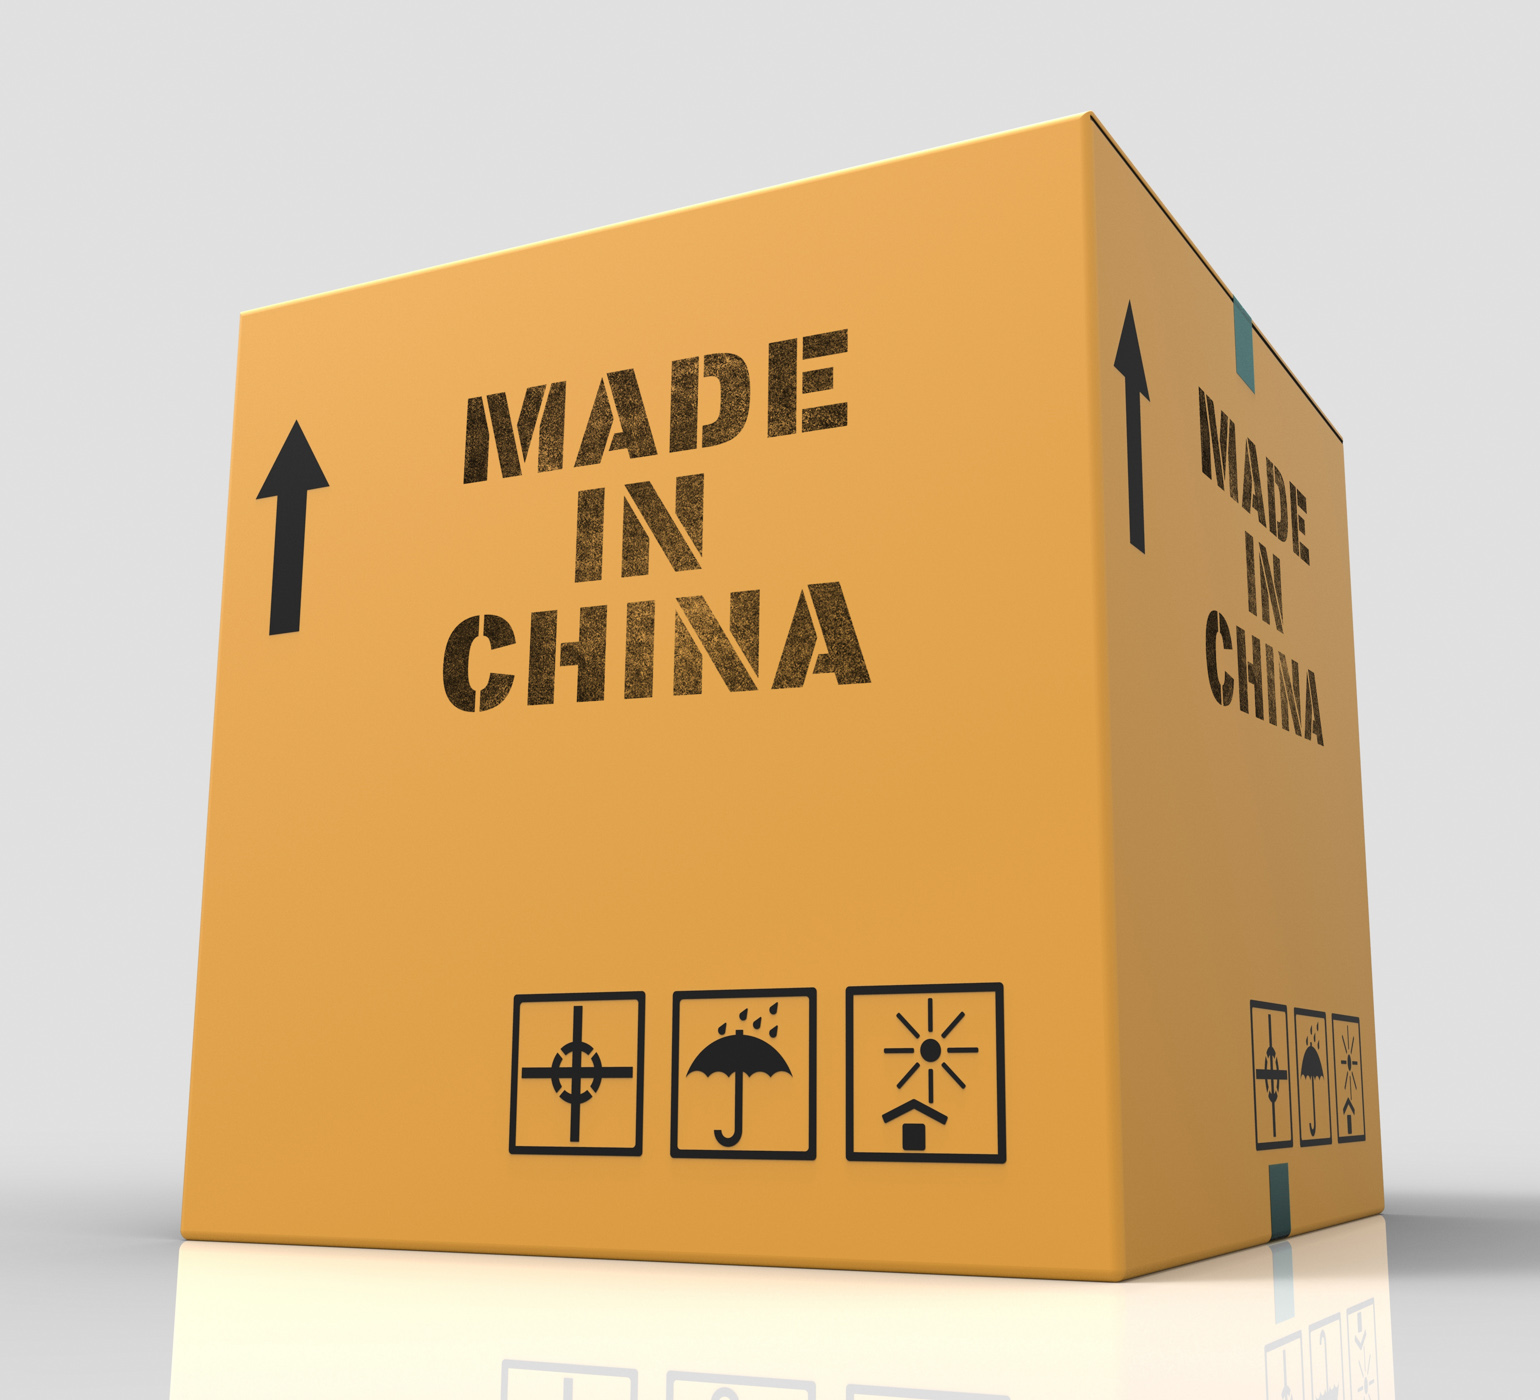 Made in china indicates goods and 3d rendering photo